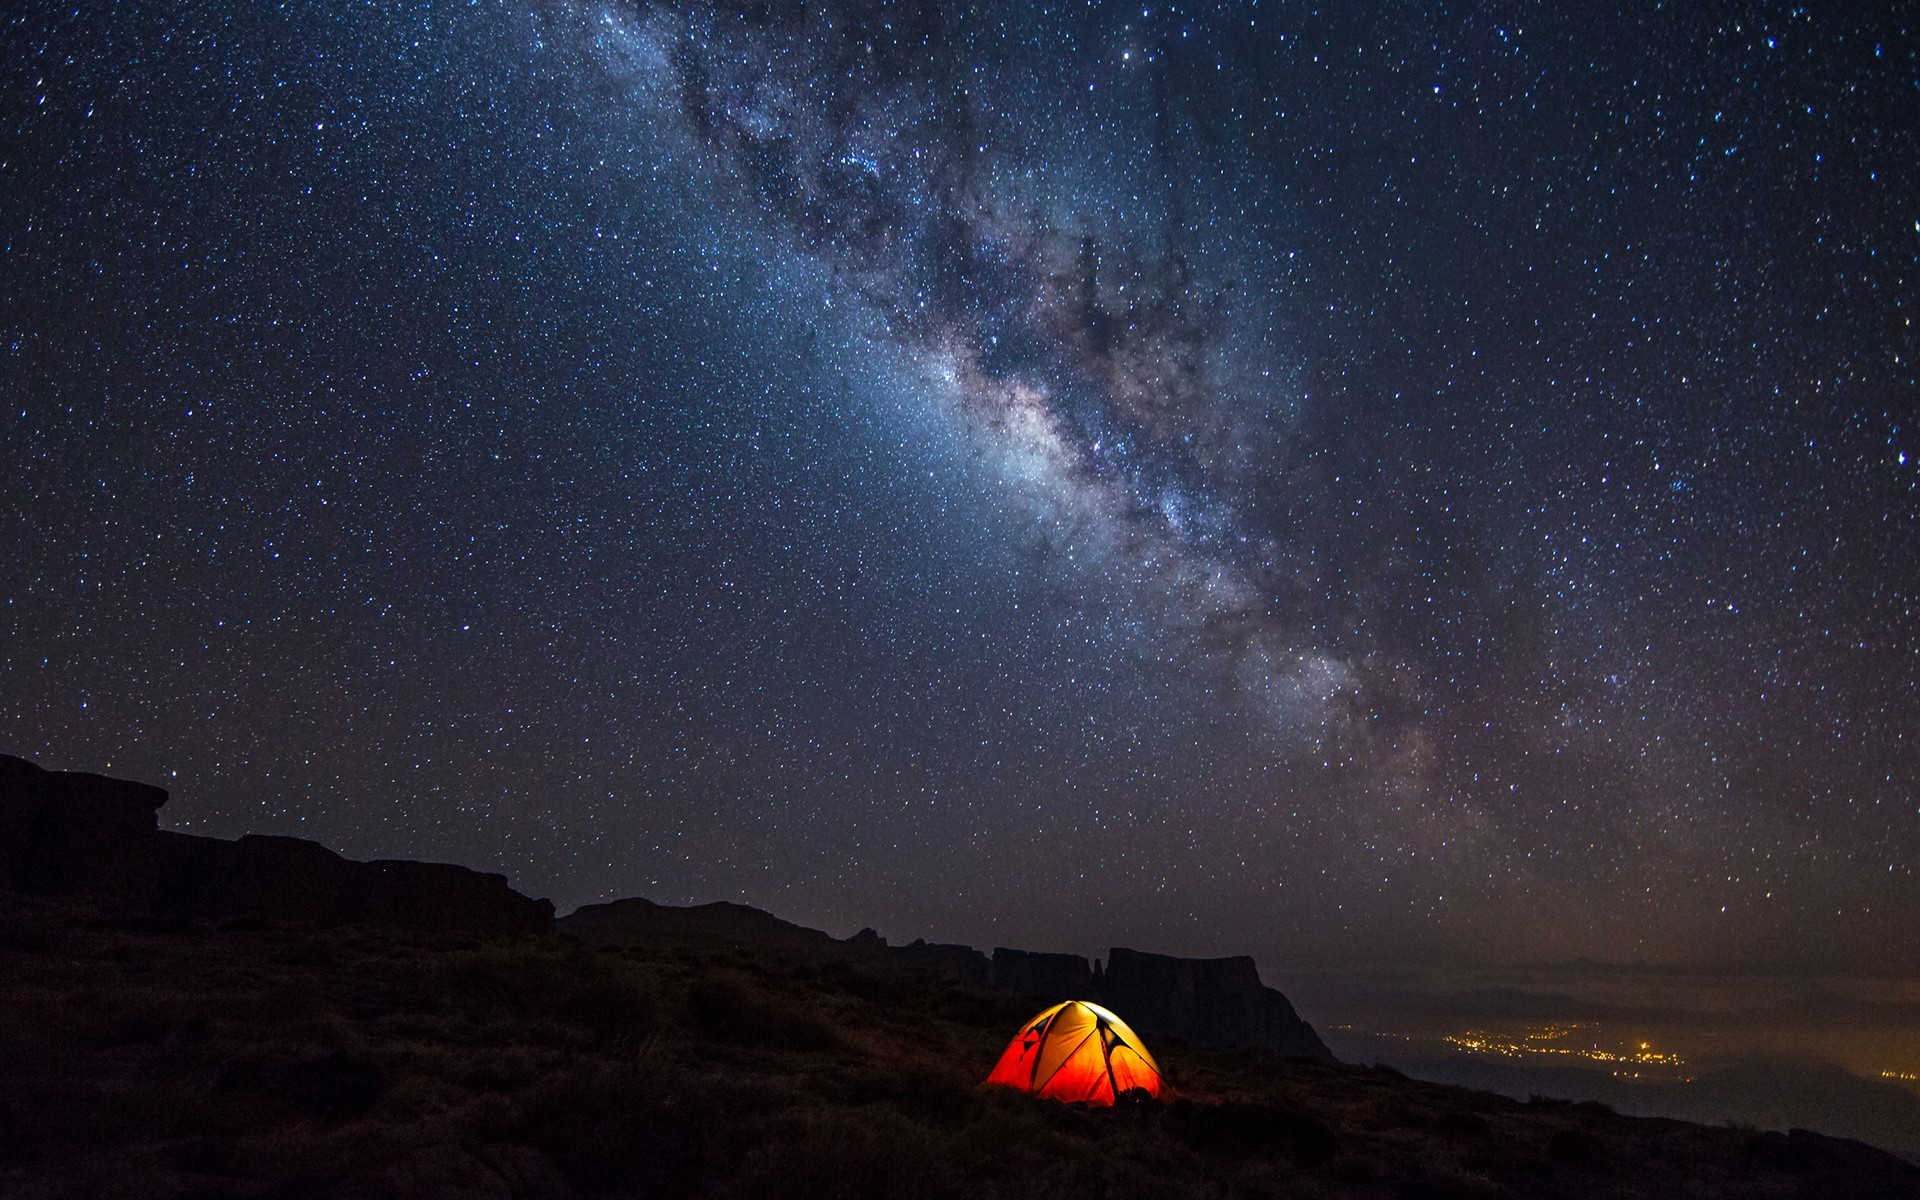 Sky Galaxy Camp Hd Nature 4k Wallpapers Images